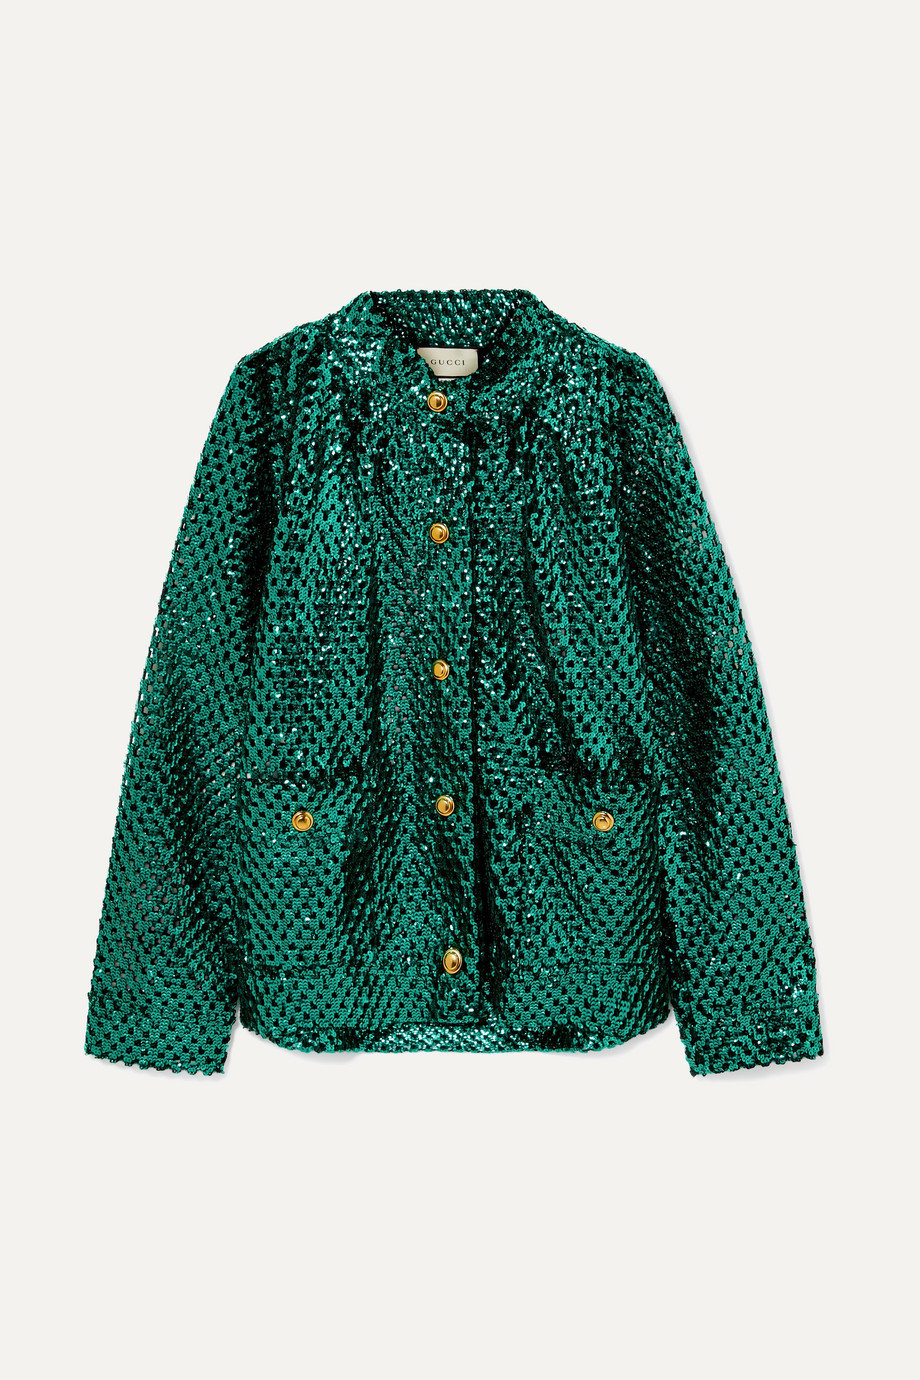 Gucci Sequined open-knit jacket